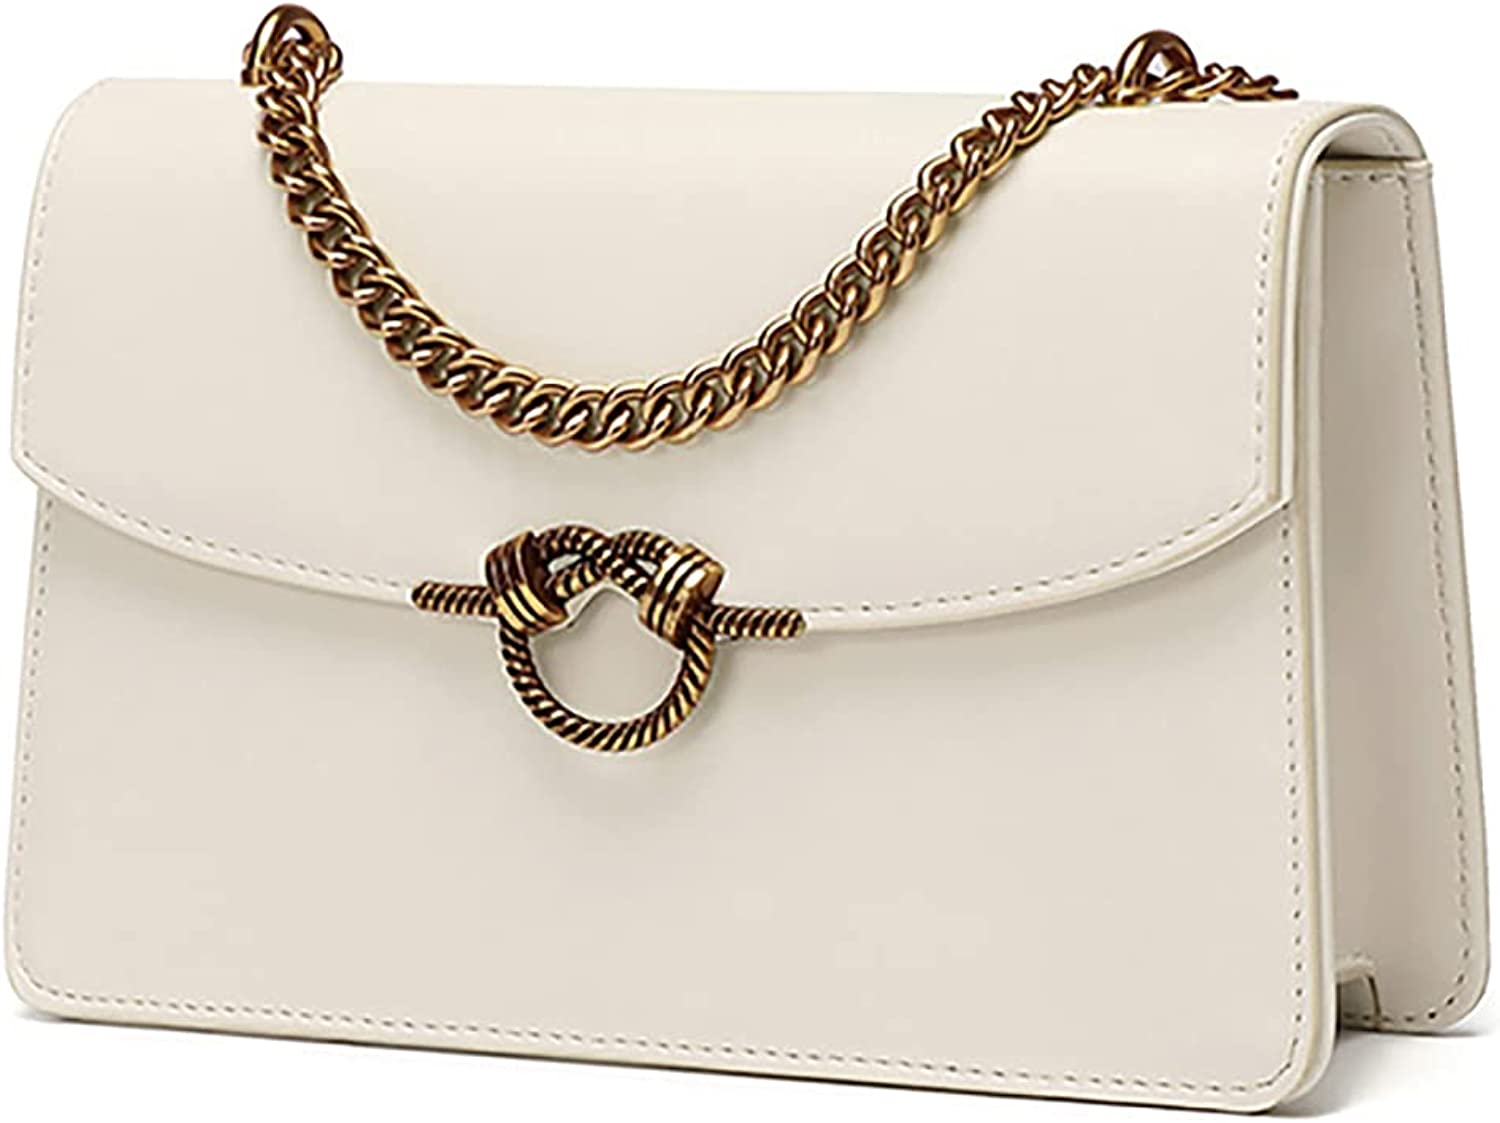 Retro Crossbody and Shoulder Bags for Women - Fashion Leather Simple Small Square Bag with Metal Chain Strap Designer Handbag